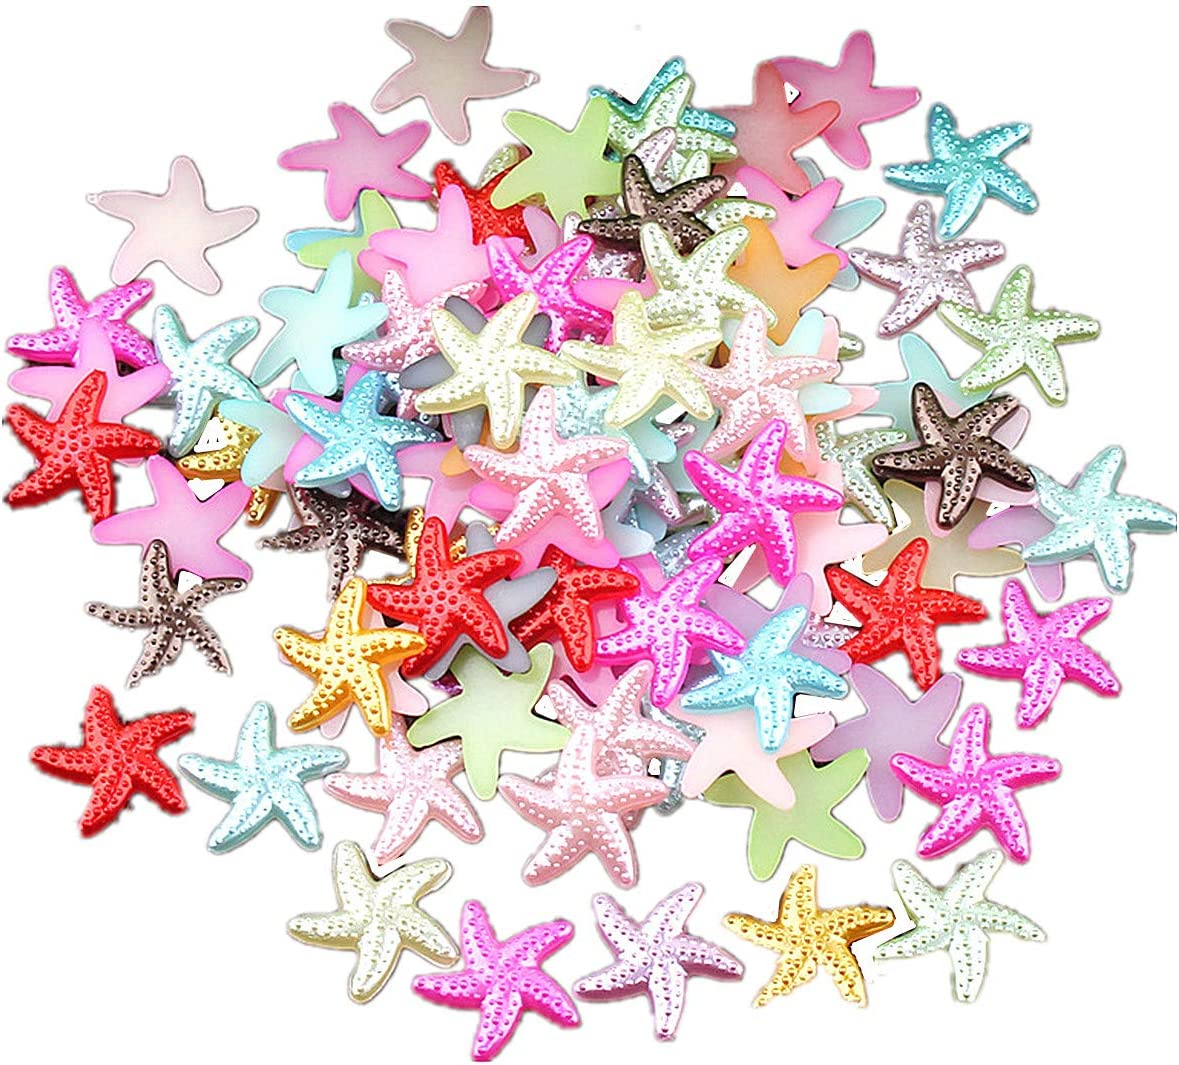 Random Color 500PCS Craft ABS Starfish Imitation Pearls Resin Slime Beads Flatback Buttons for Handcraft Accessories Scrapbooking Phone Case Decor Bead Loose Beads Gem DIY